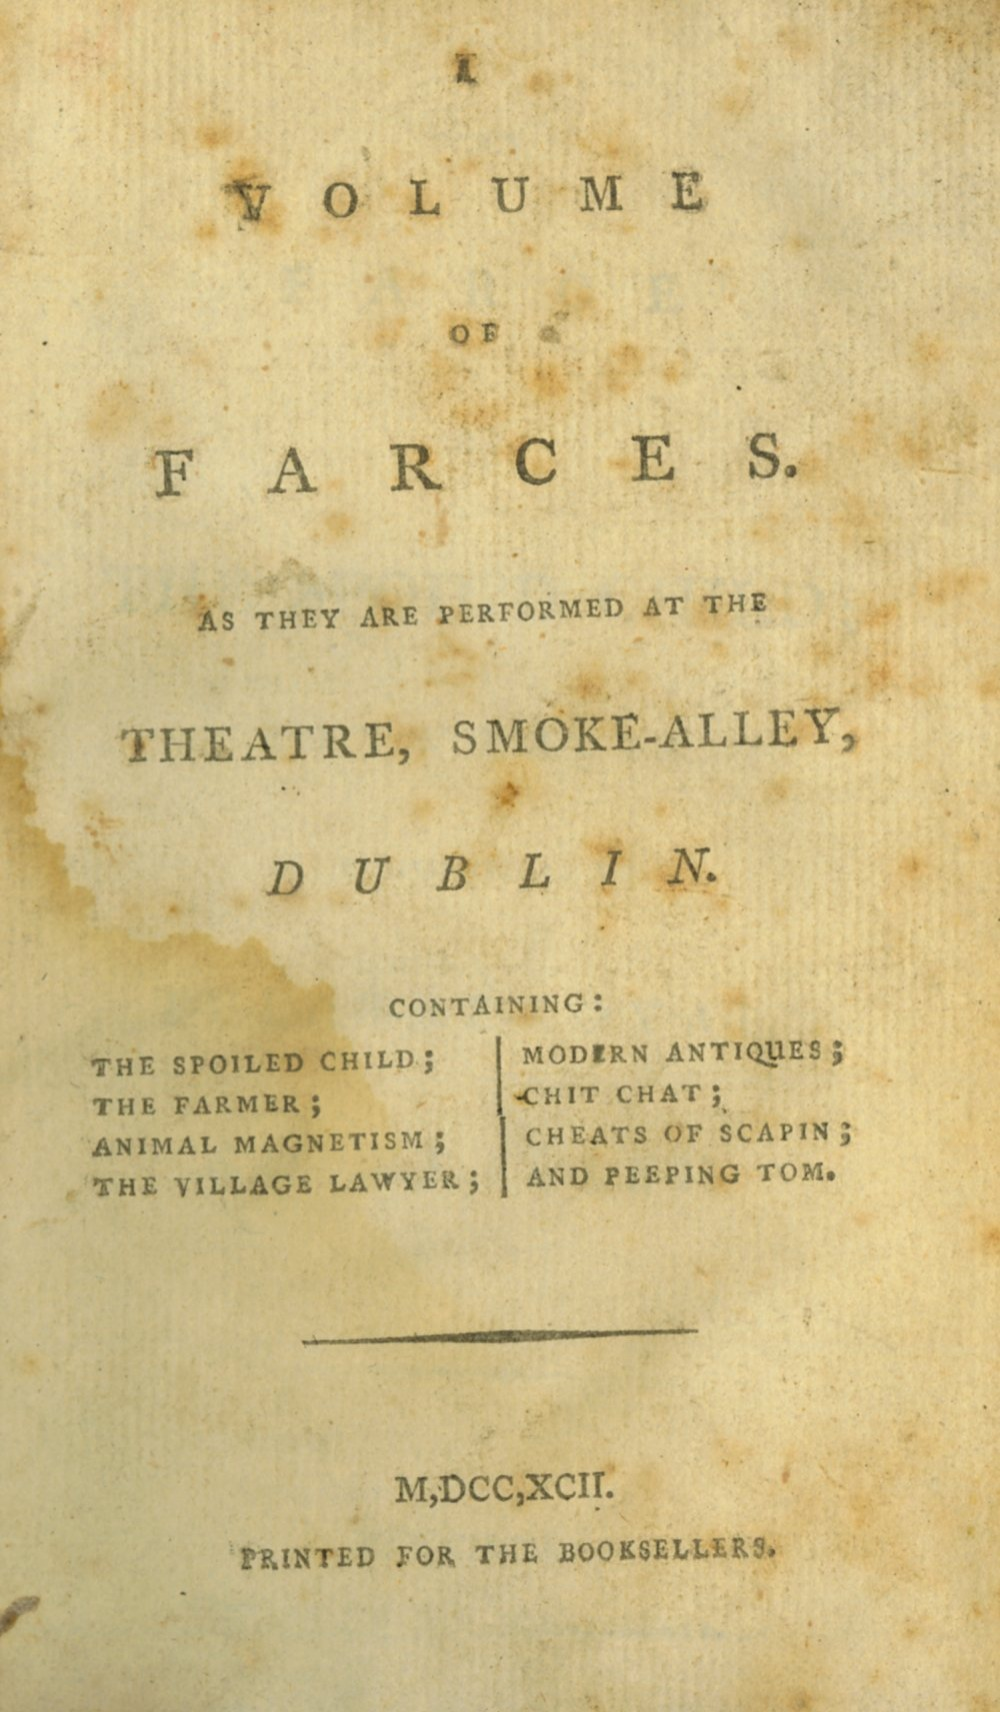 Irish Plays: A Volume of Farces, As they are Performed at the Theatre, Smoke-Alley, Dublin.